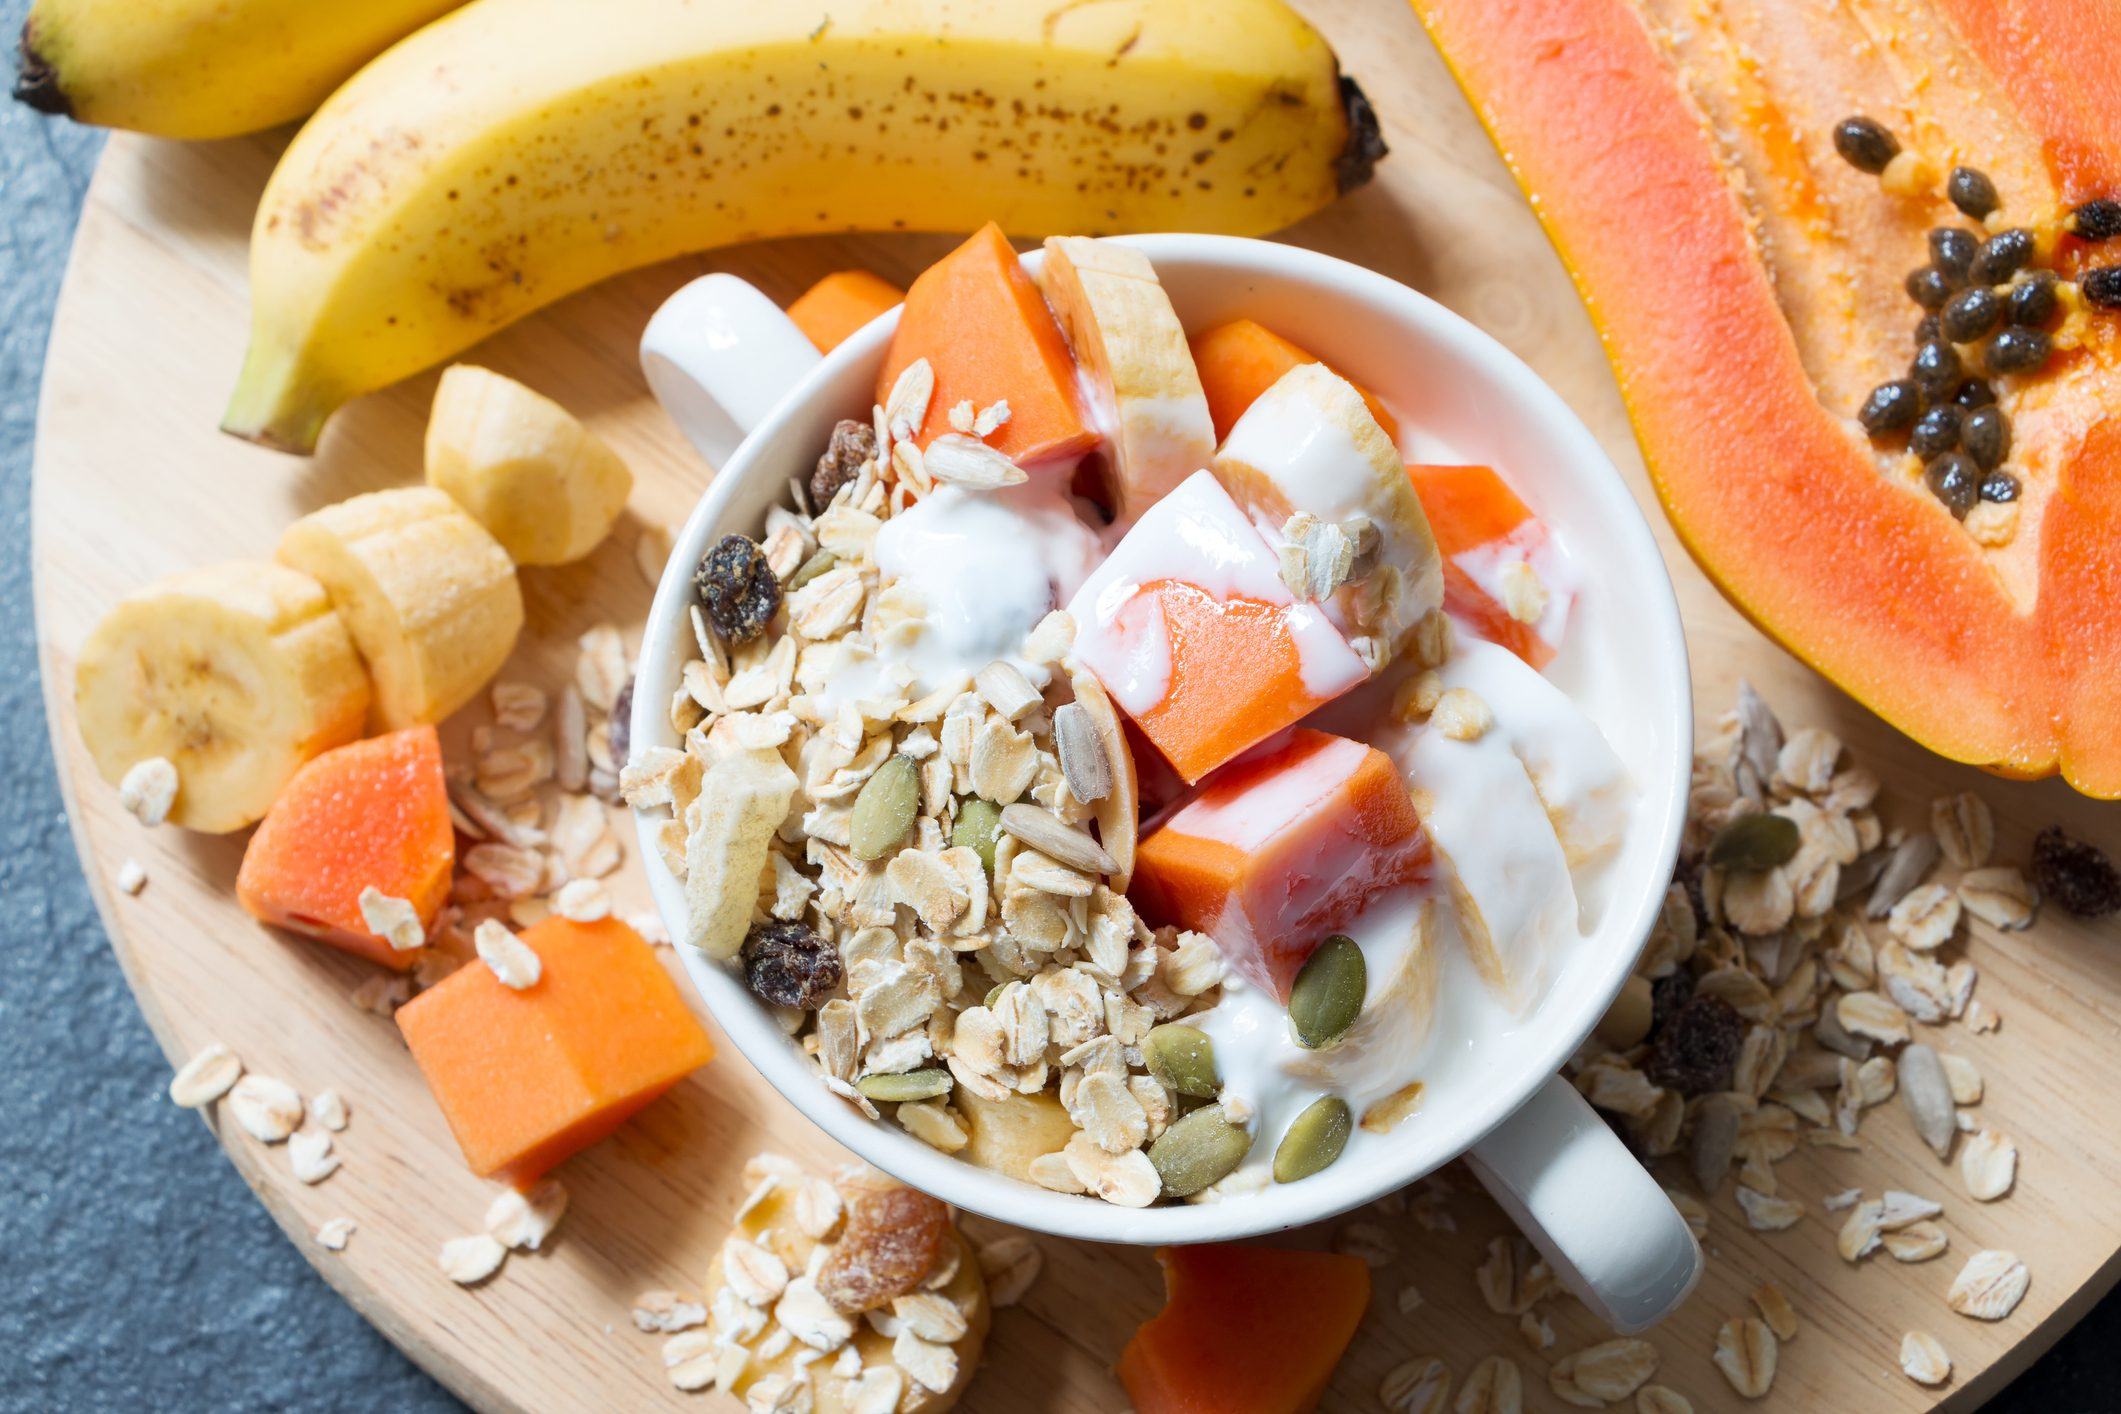 Swedish muesli breakfast bowl